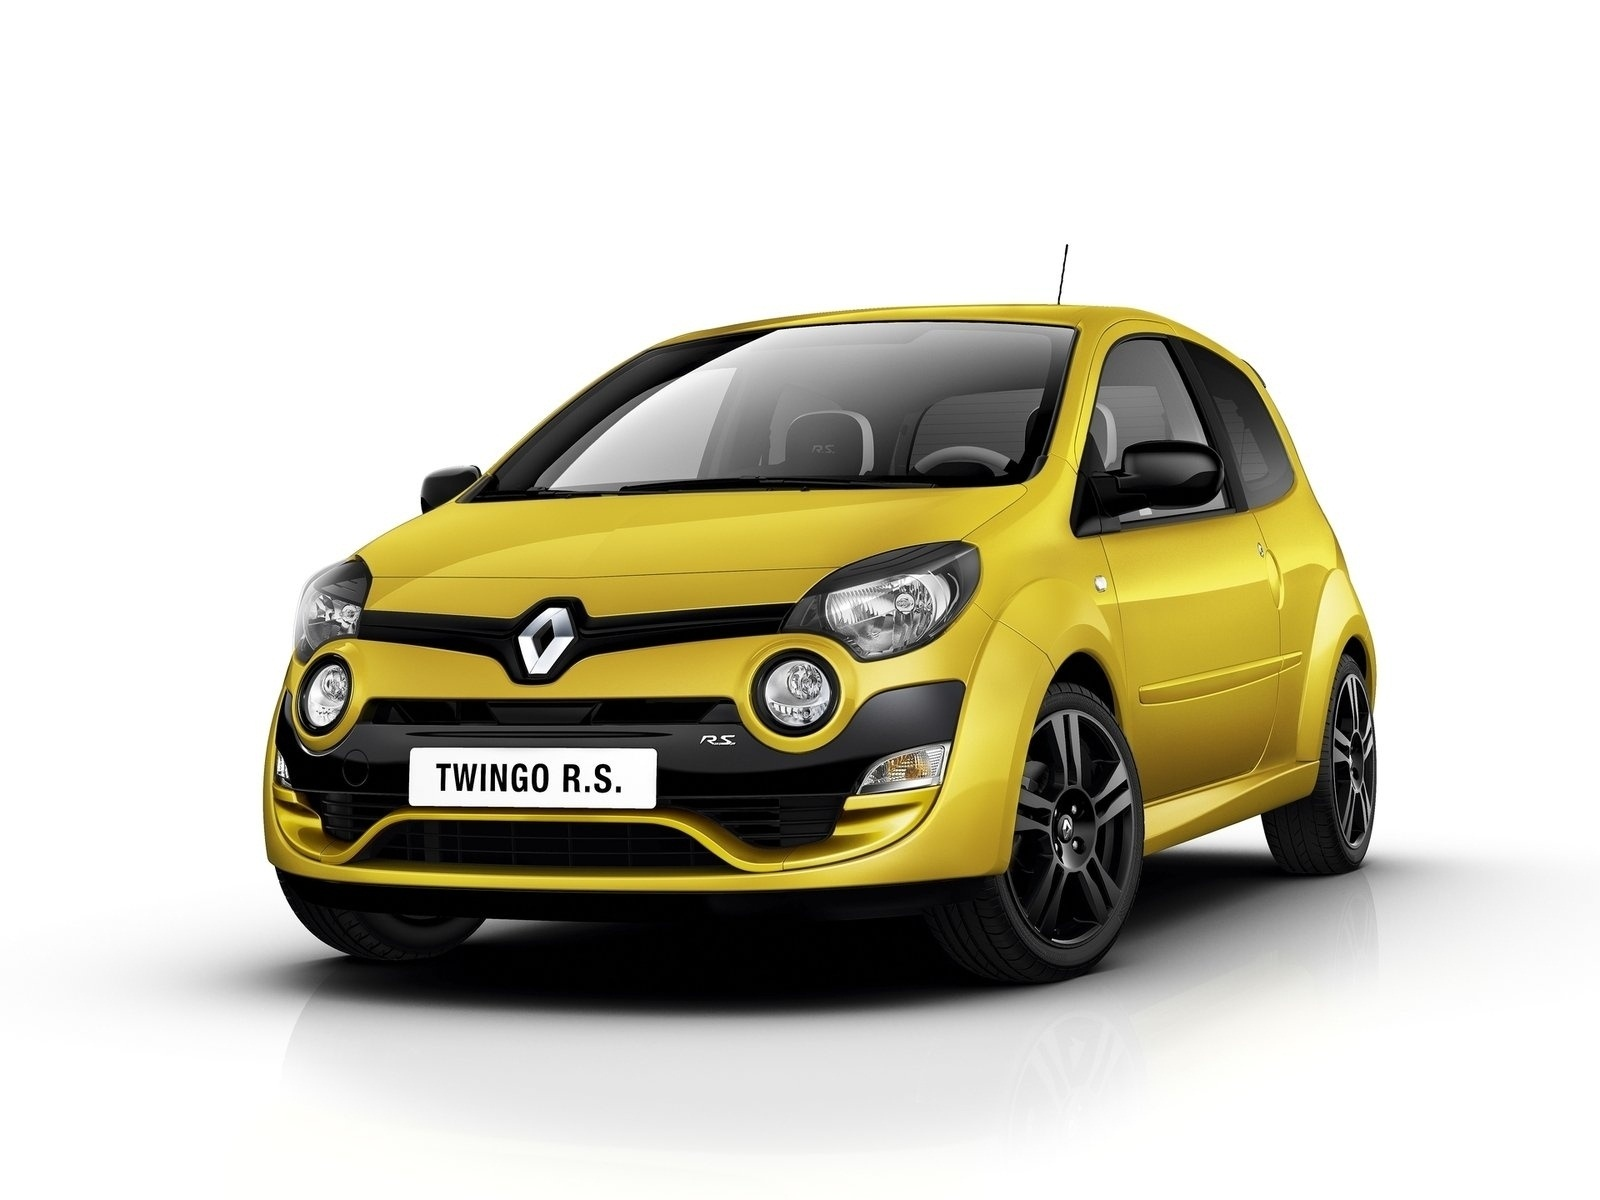 renault twingo rs renault wallpaper 26793064 fanpop. Black Bedroom Furniture Sets. Home Design Ideas